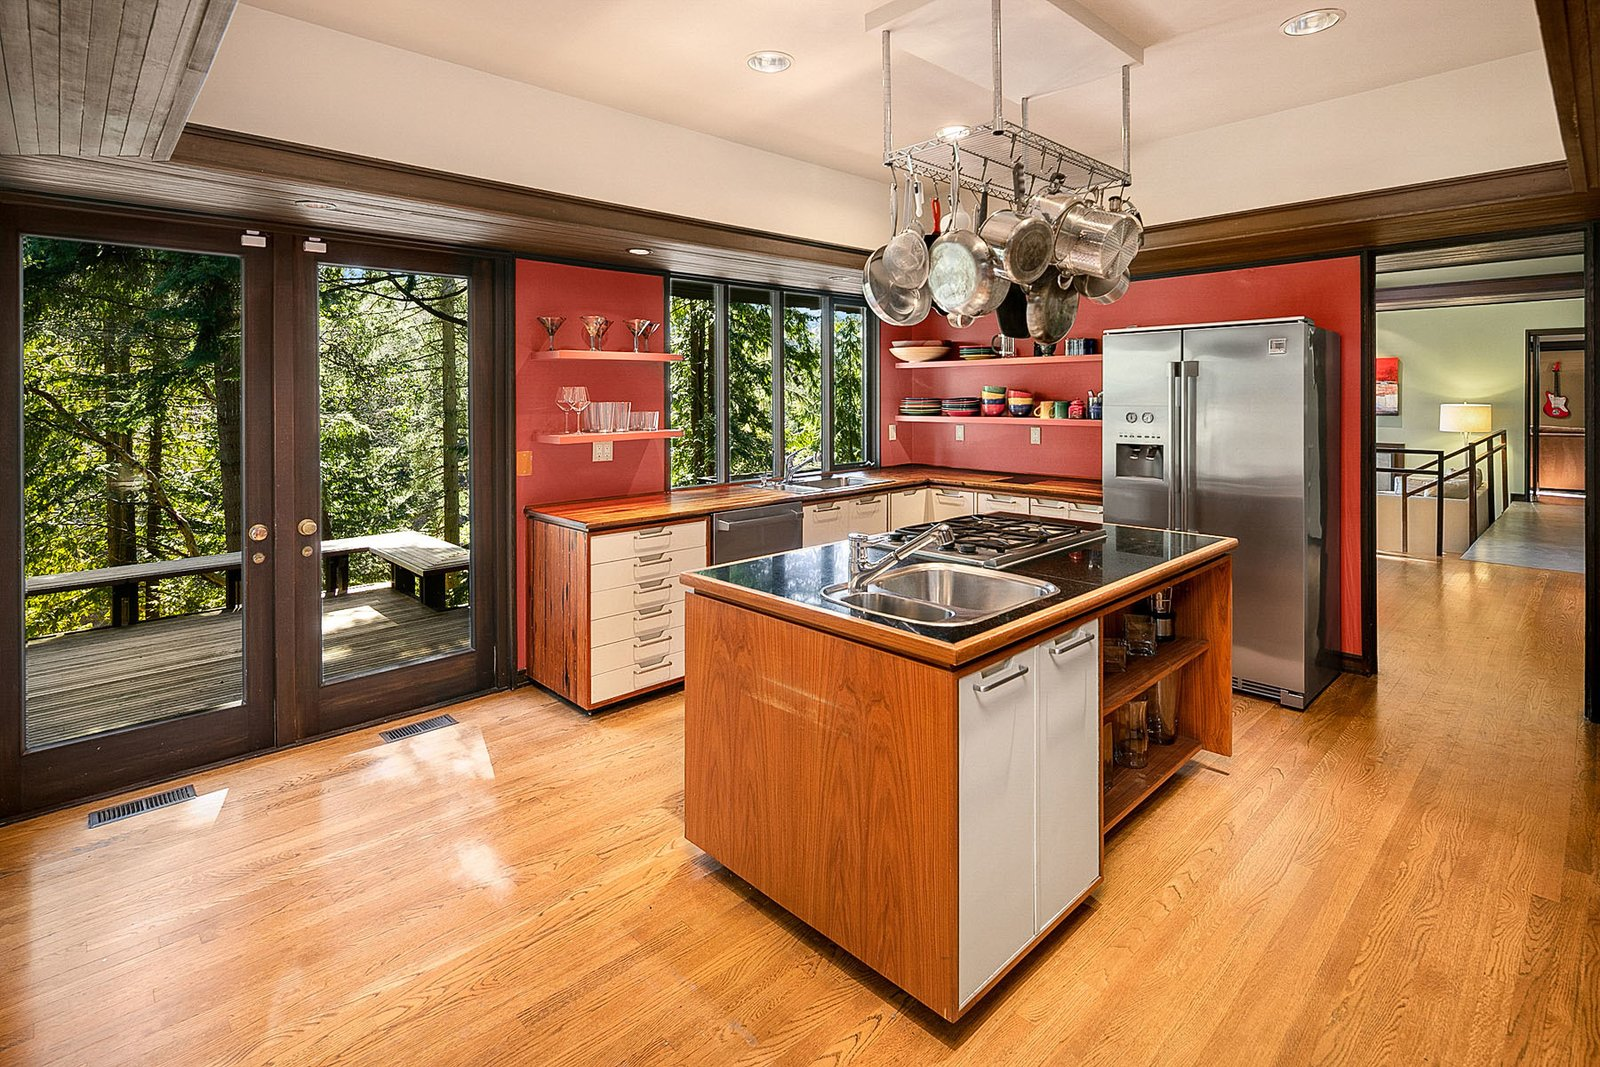 Ralph D. Anderson Midcentury Home kitchen